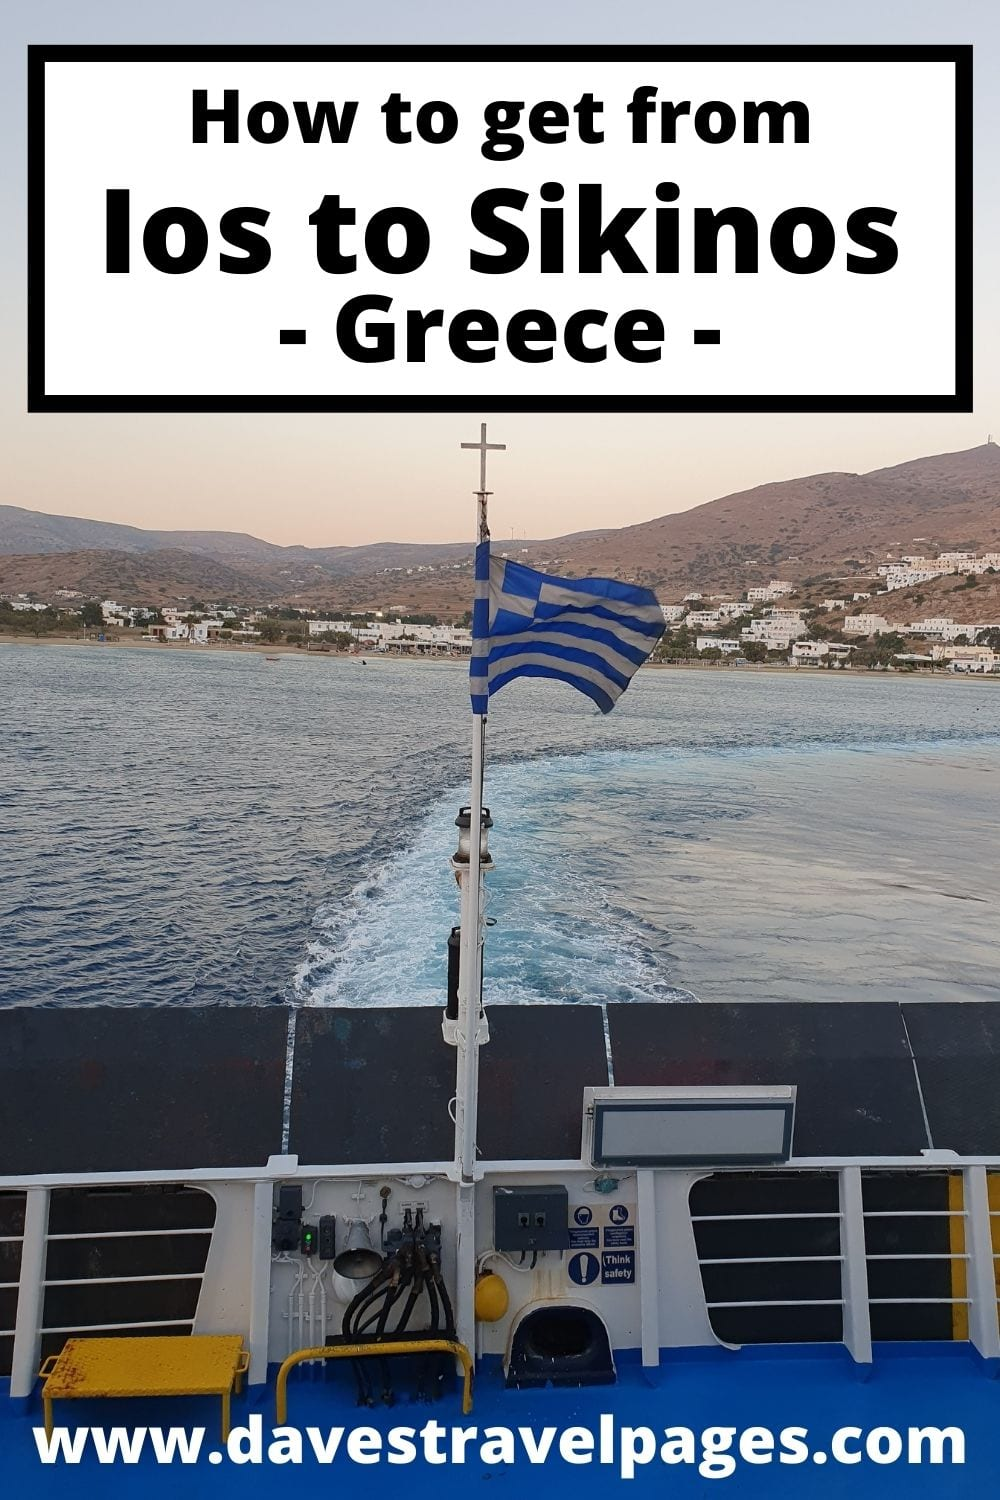 How to get from Ios to Sikinos island in Greece by ferry